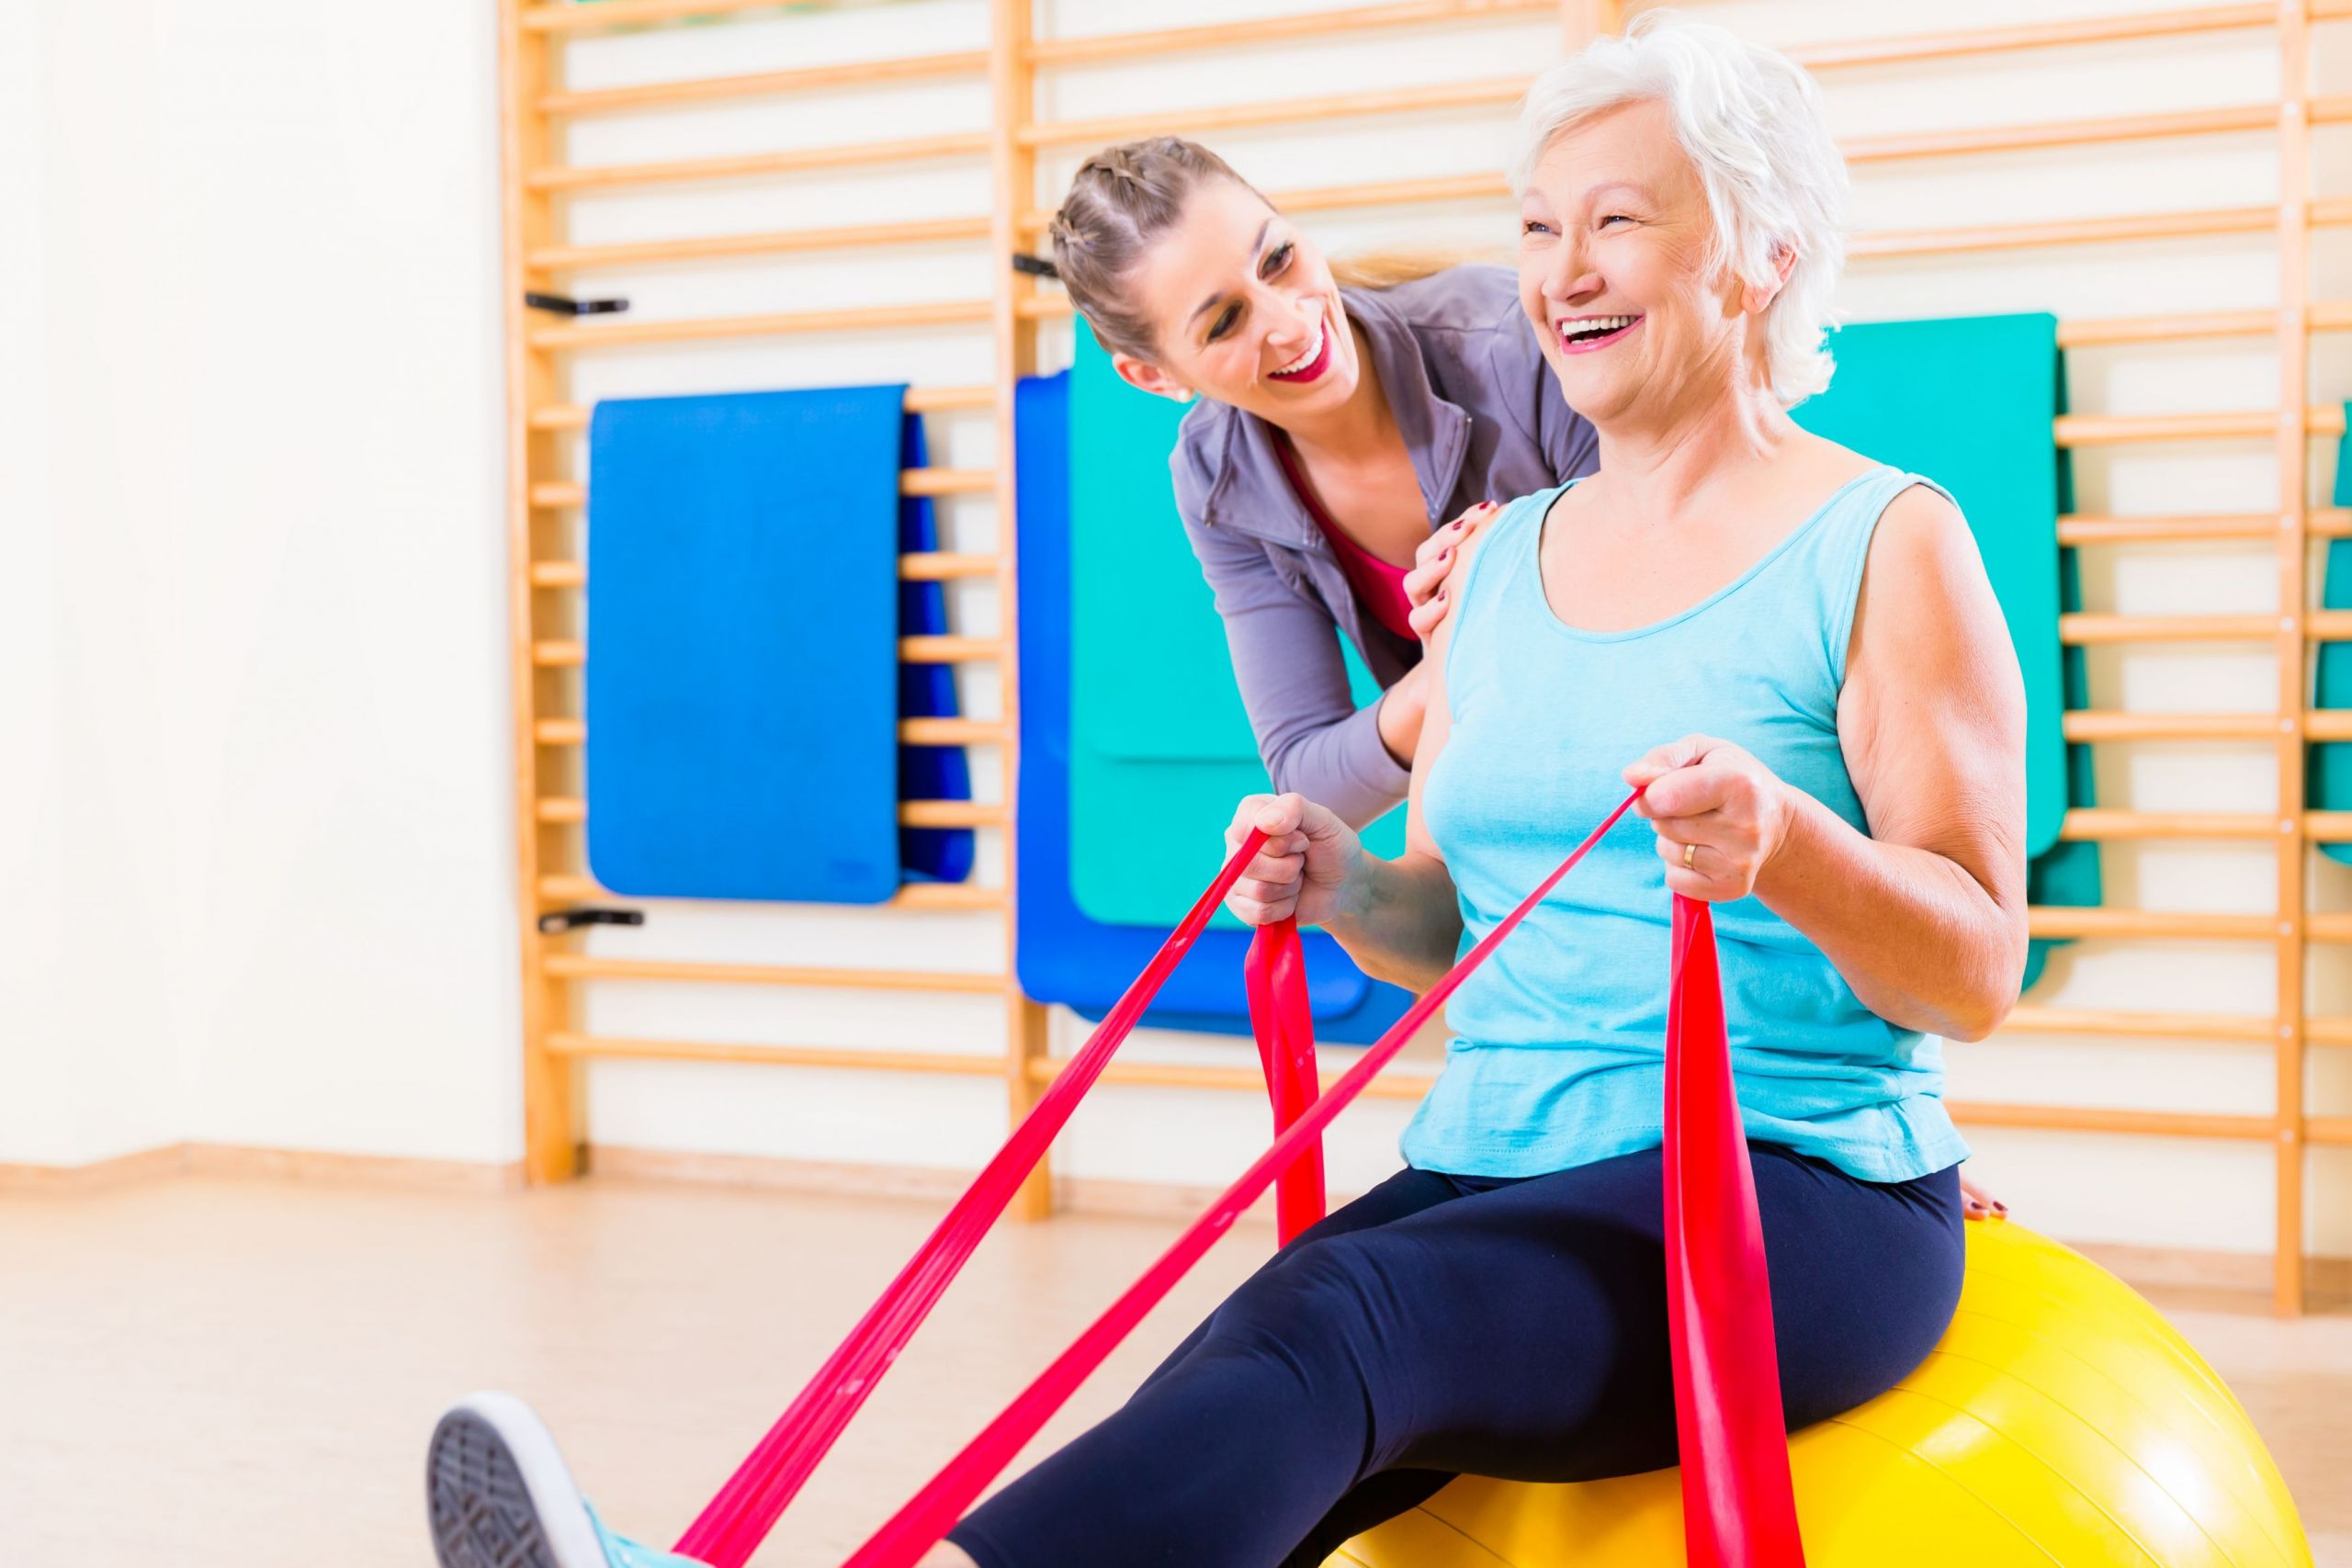 summit pointe physical therapy